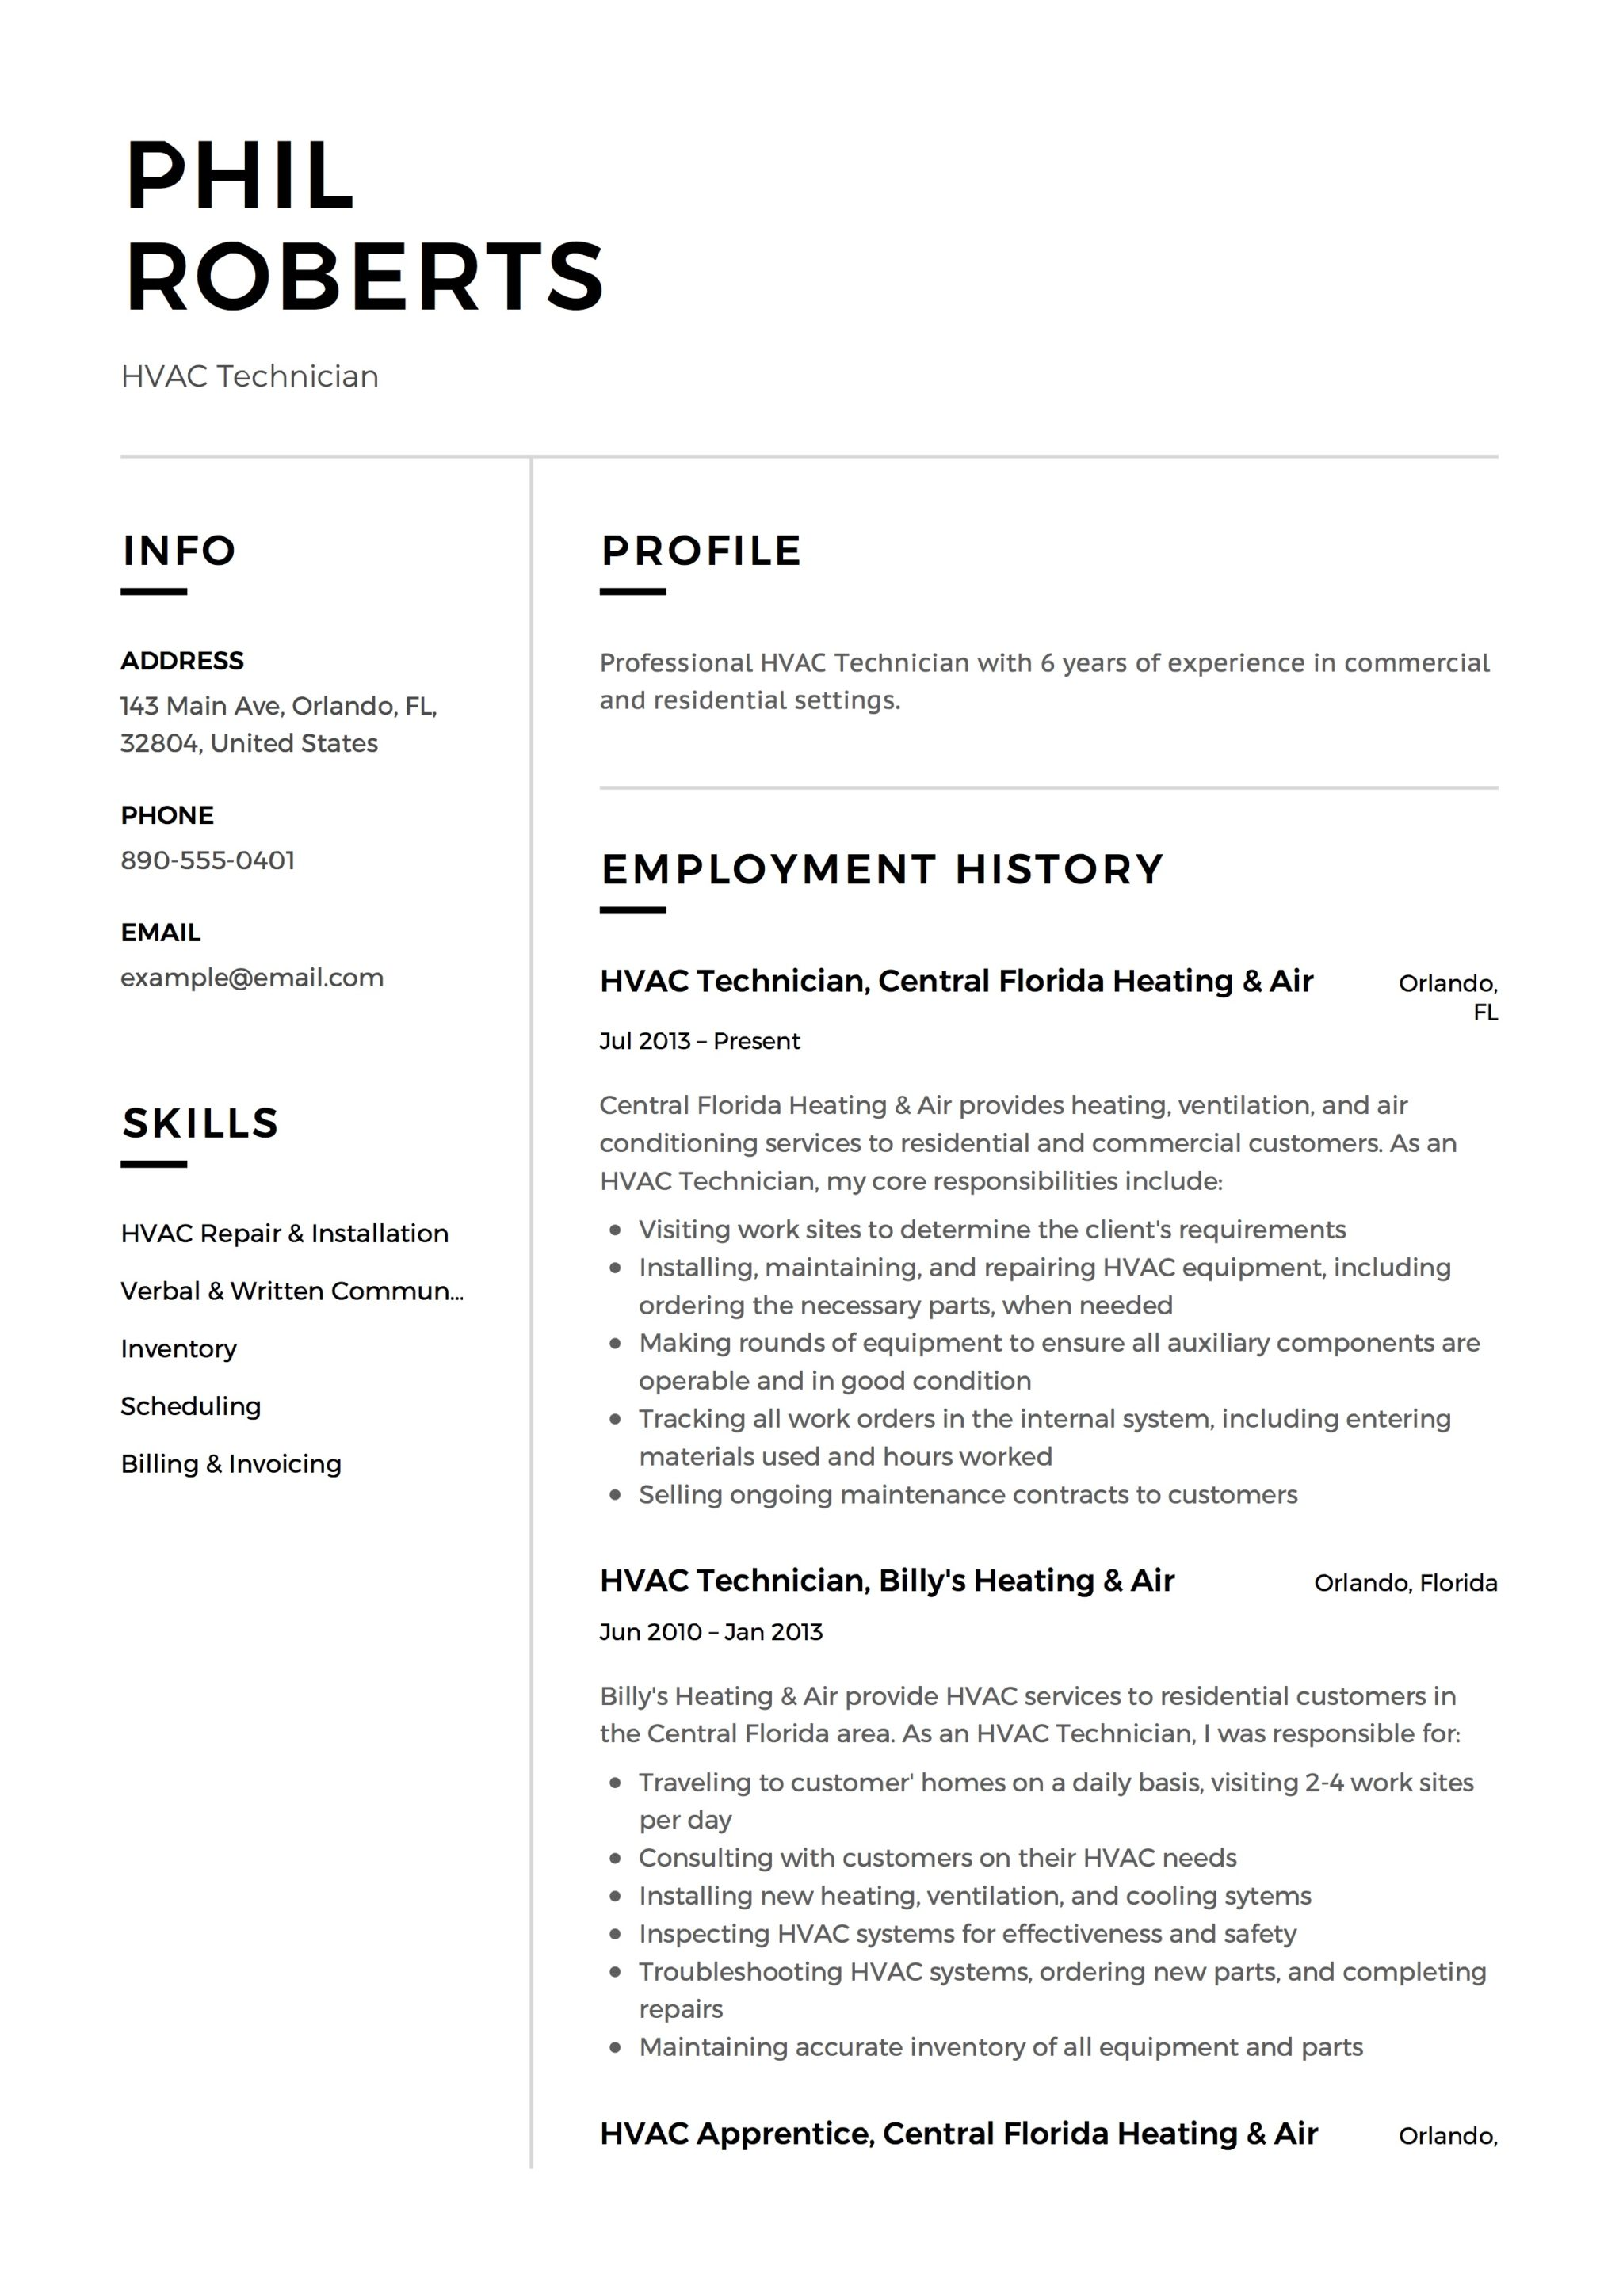 Resume builder   Resumeviking